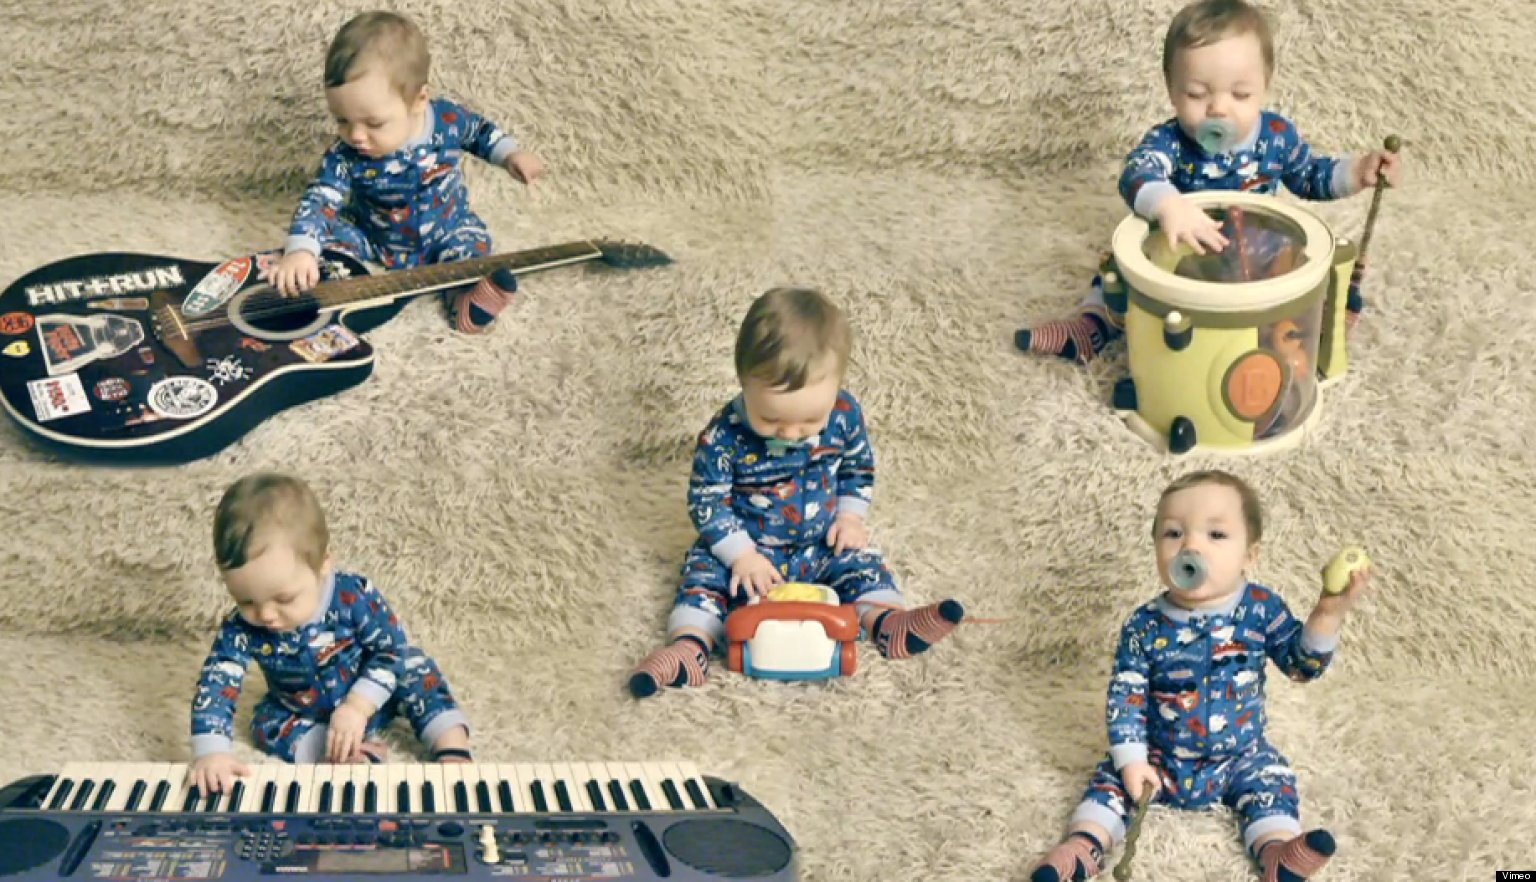 WATCH: 'One Baby Band' Stars Multi-Talented 9-Month-Old